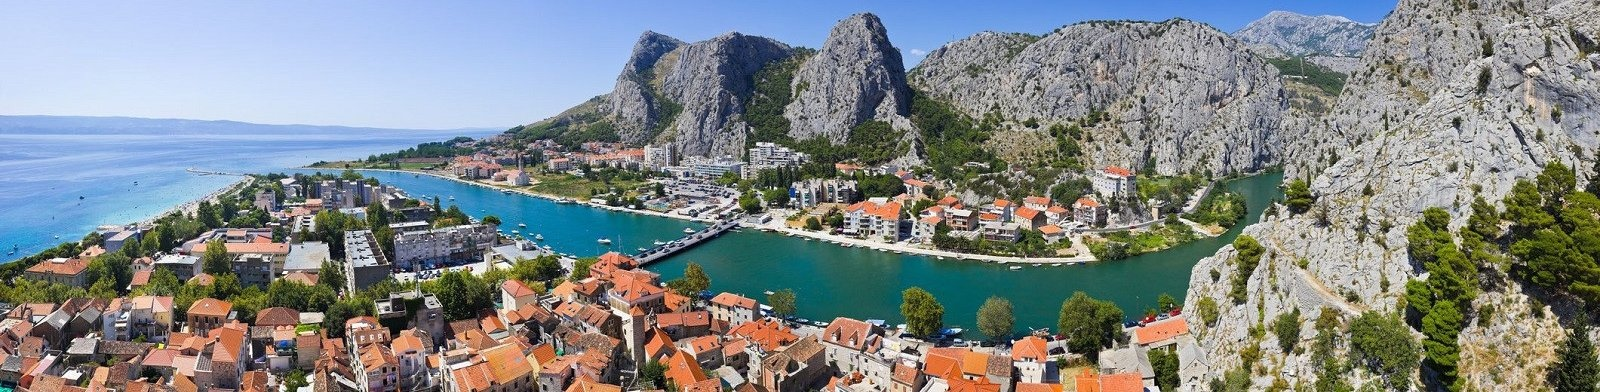 Omis view